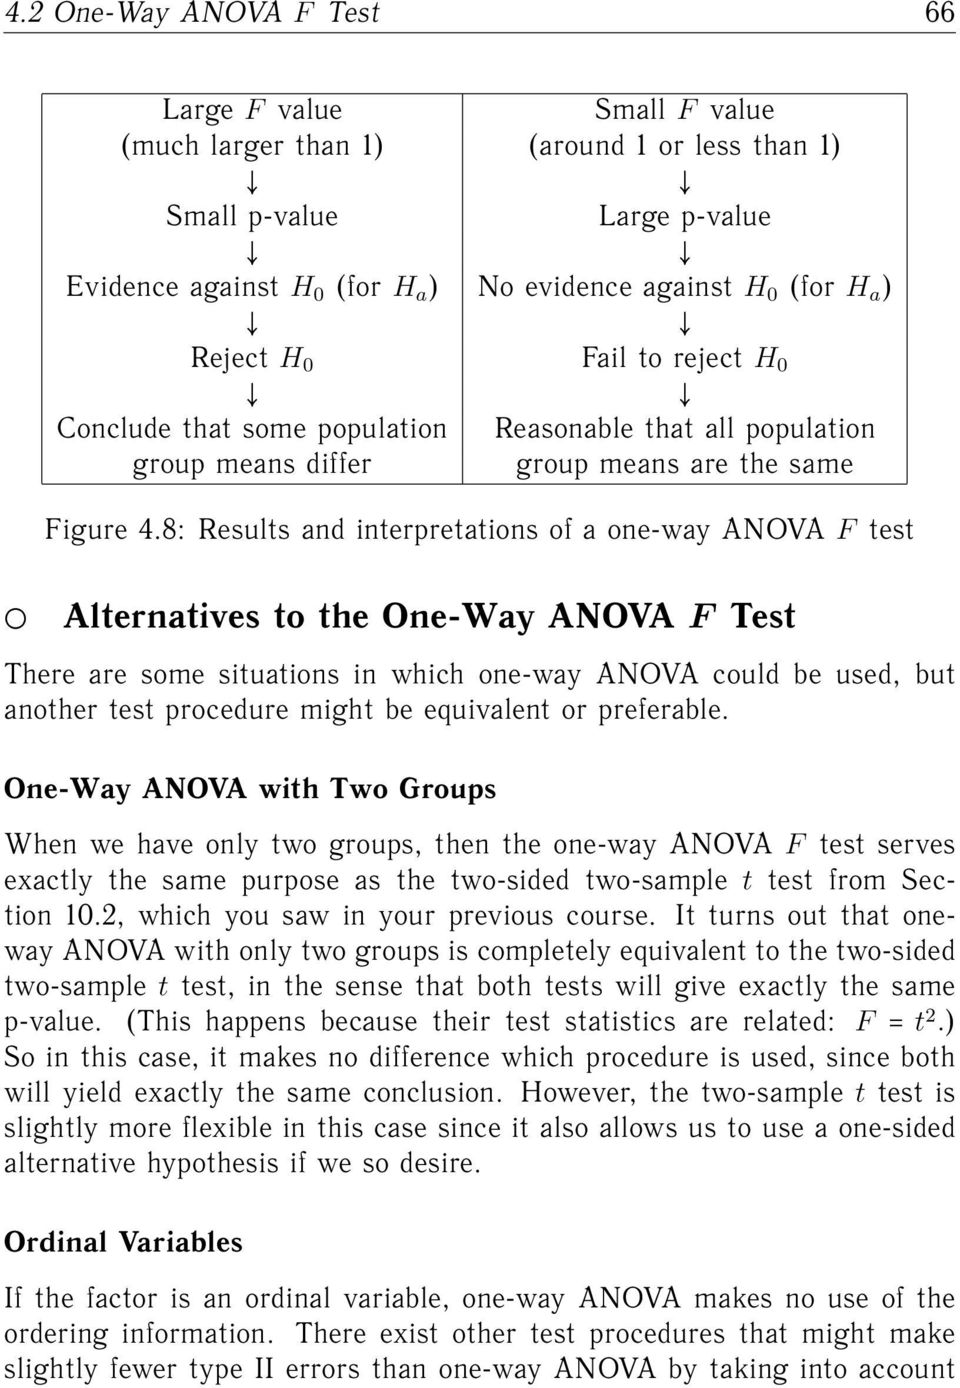 8: Results and interpretations of a one-way ANOVA F test Alternatives to the One-Way ANOVA F Test There are some situations in which one-way ANOVA could be used, but another test procedure might be